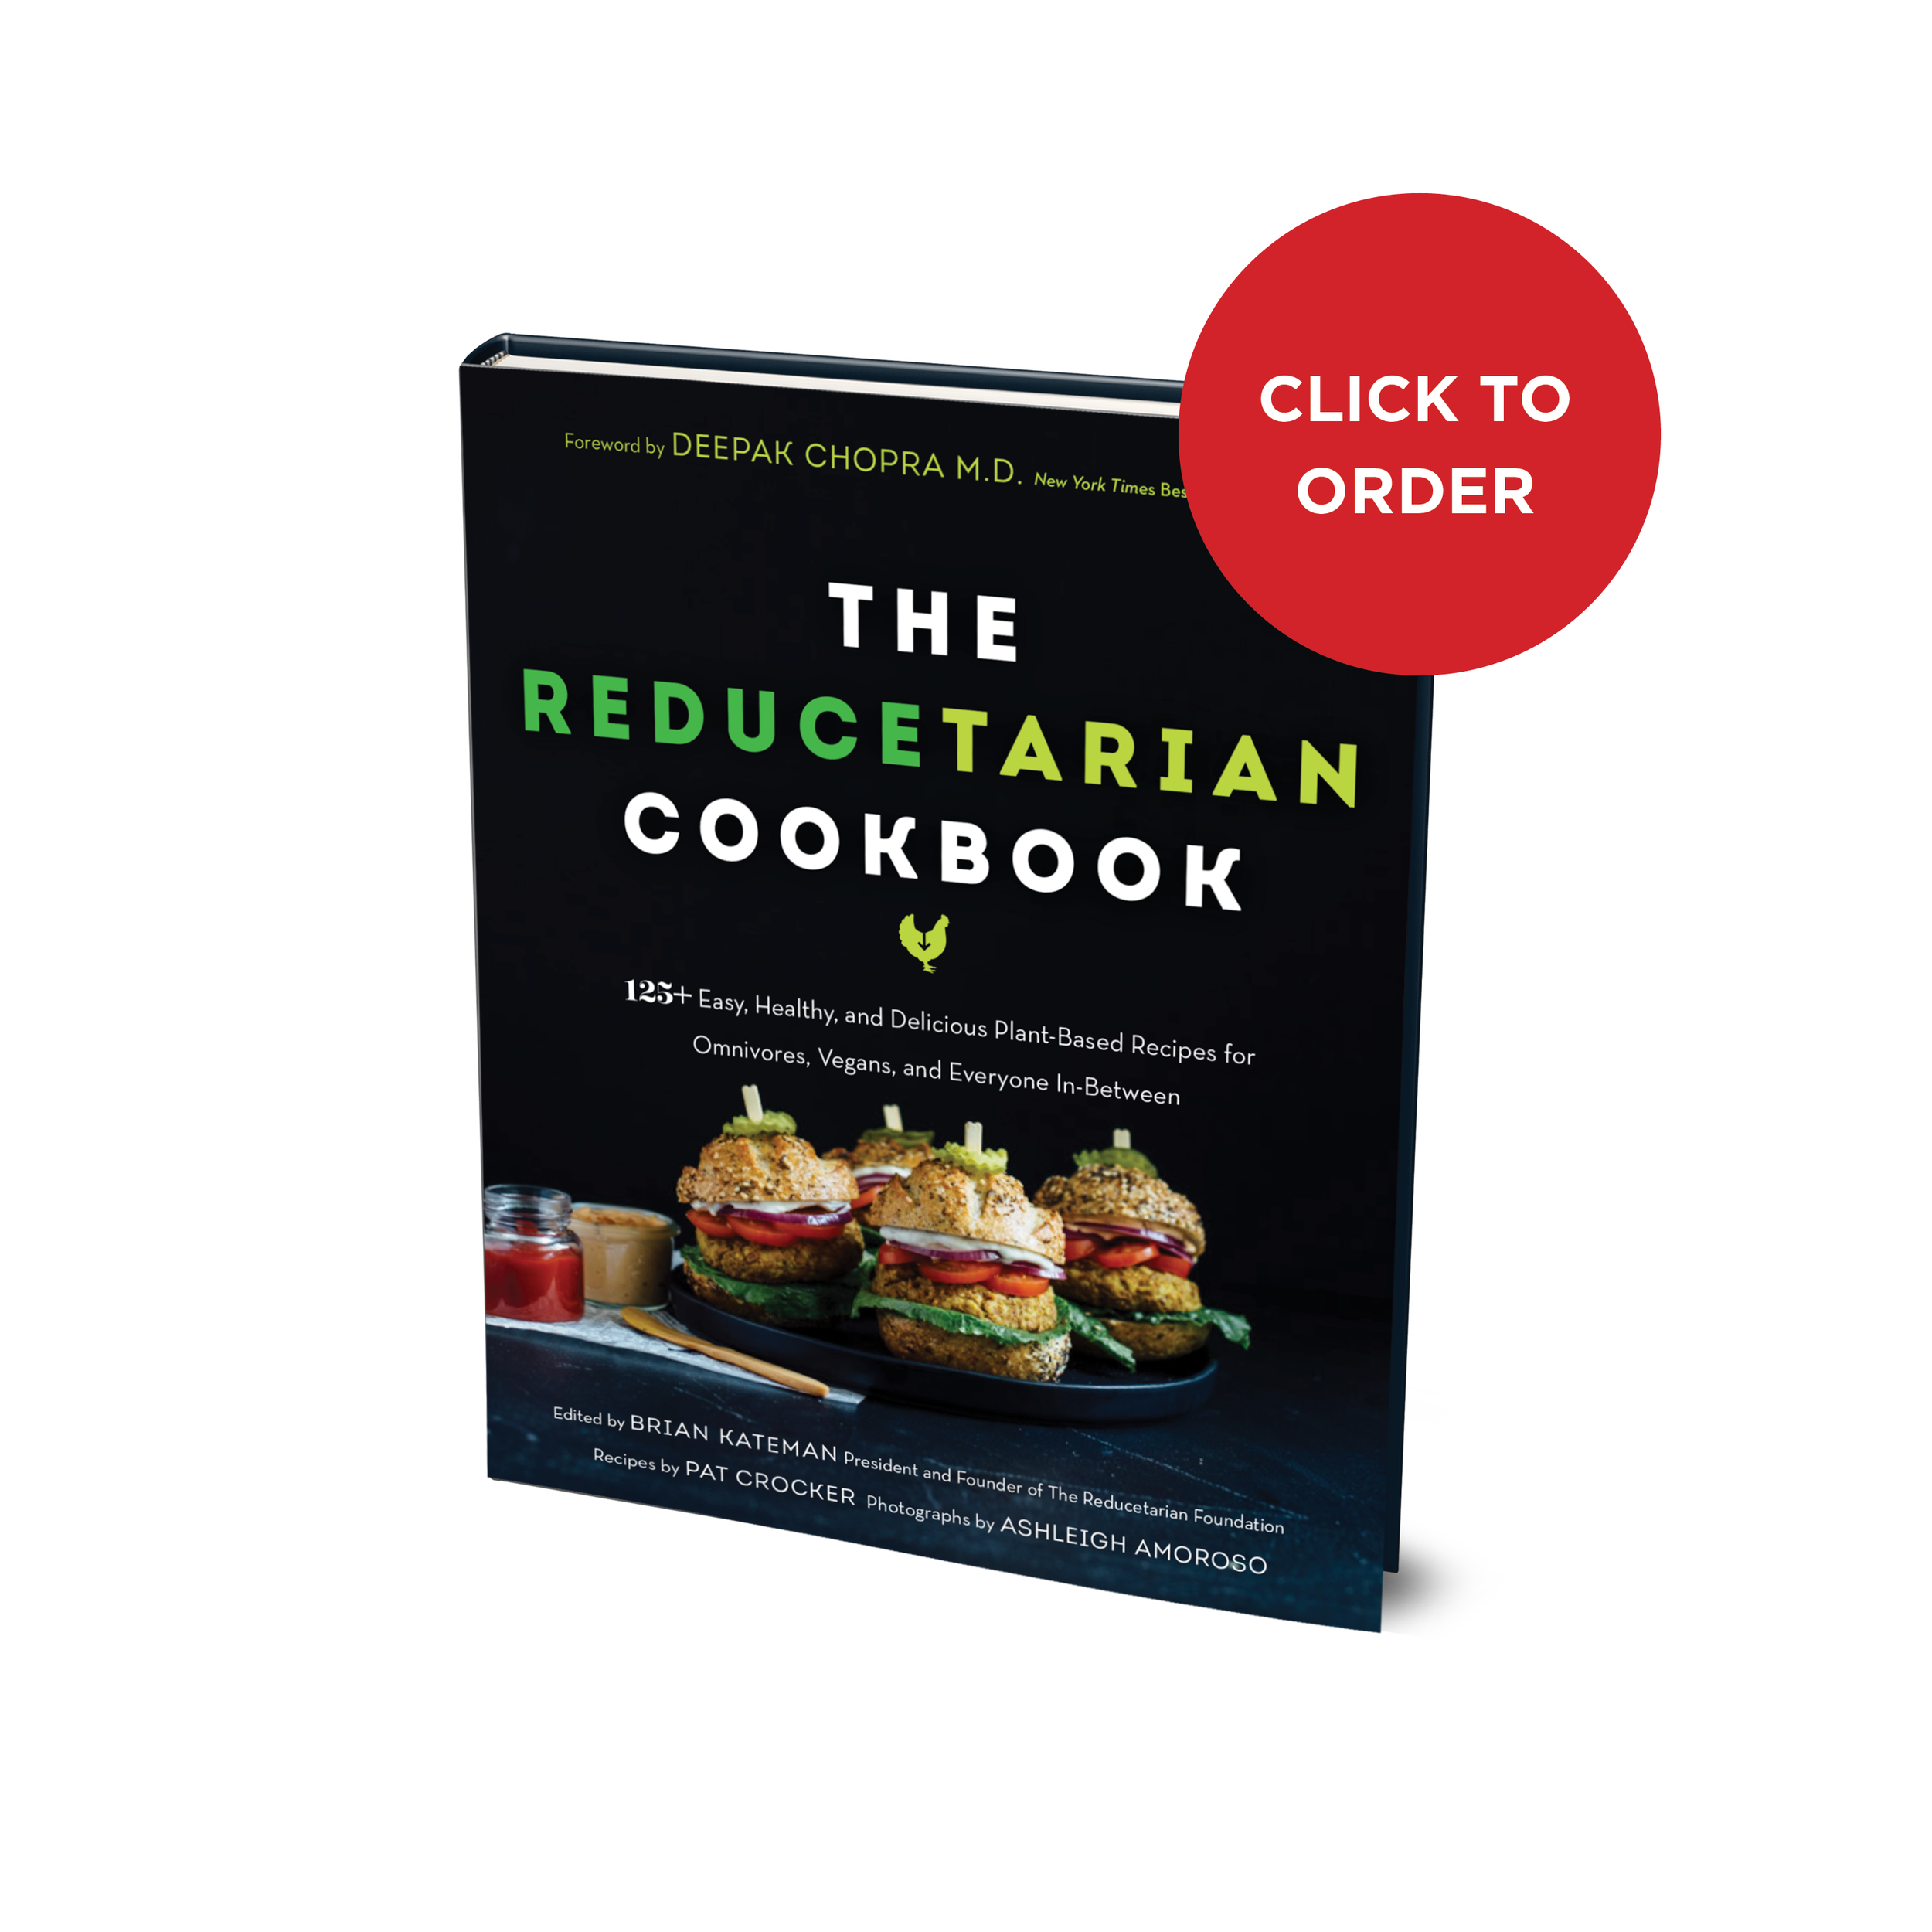 ReduceCookbook_OrderBadge2.png